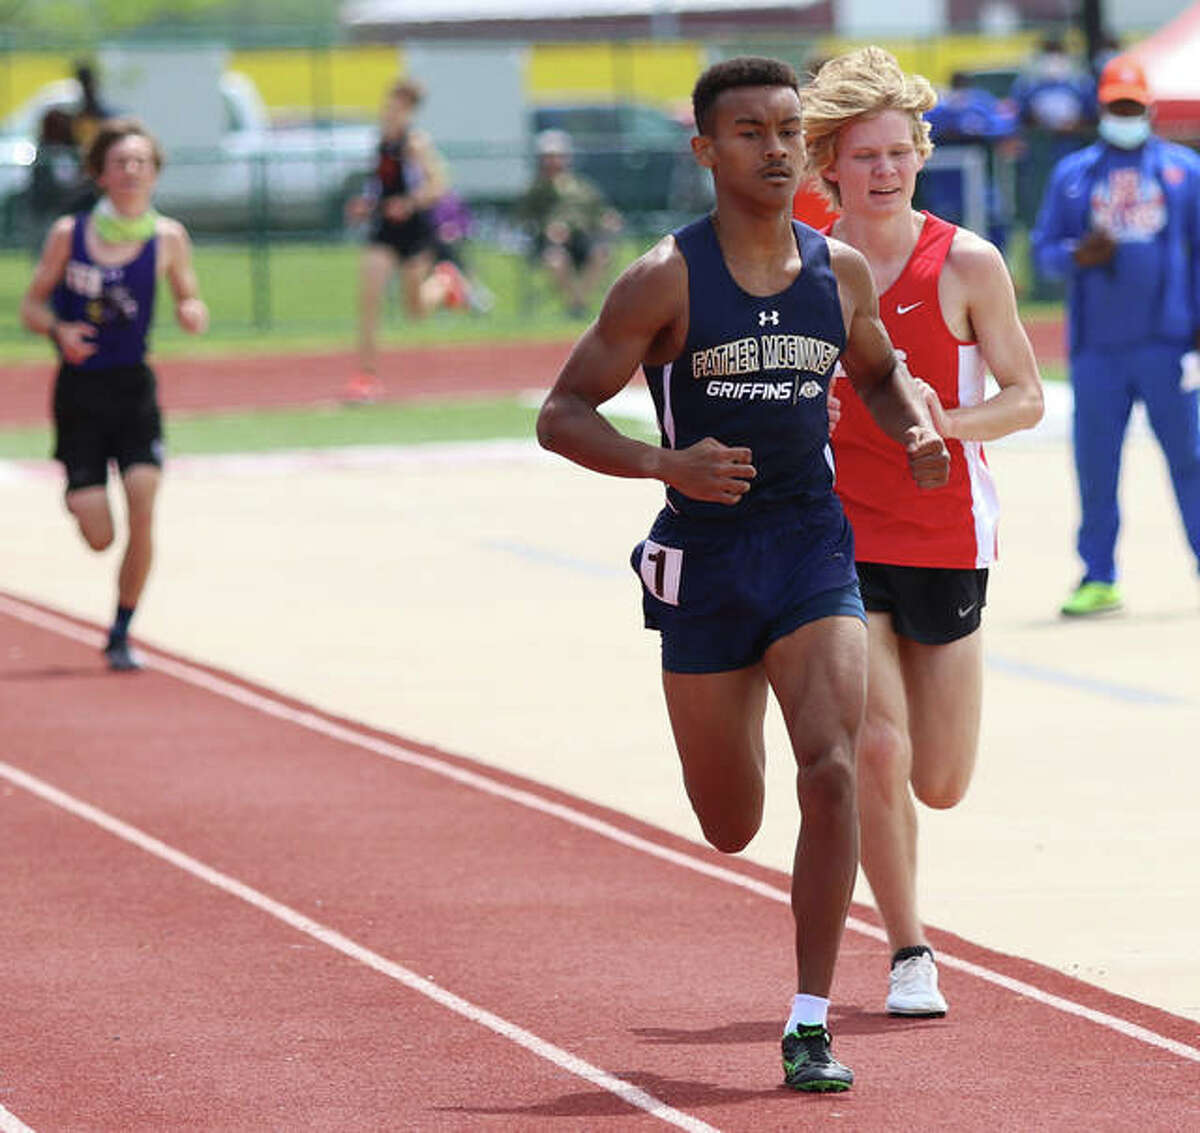 Father McGivney senior Tyler Guthrie laps another runner near finish line of the 3,200-meter run at the Norm Armstrong Invitational at Belleville West High School.